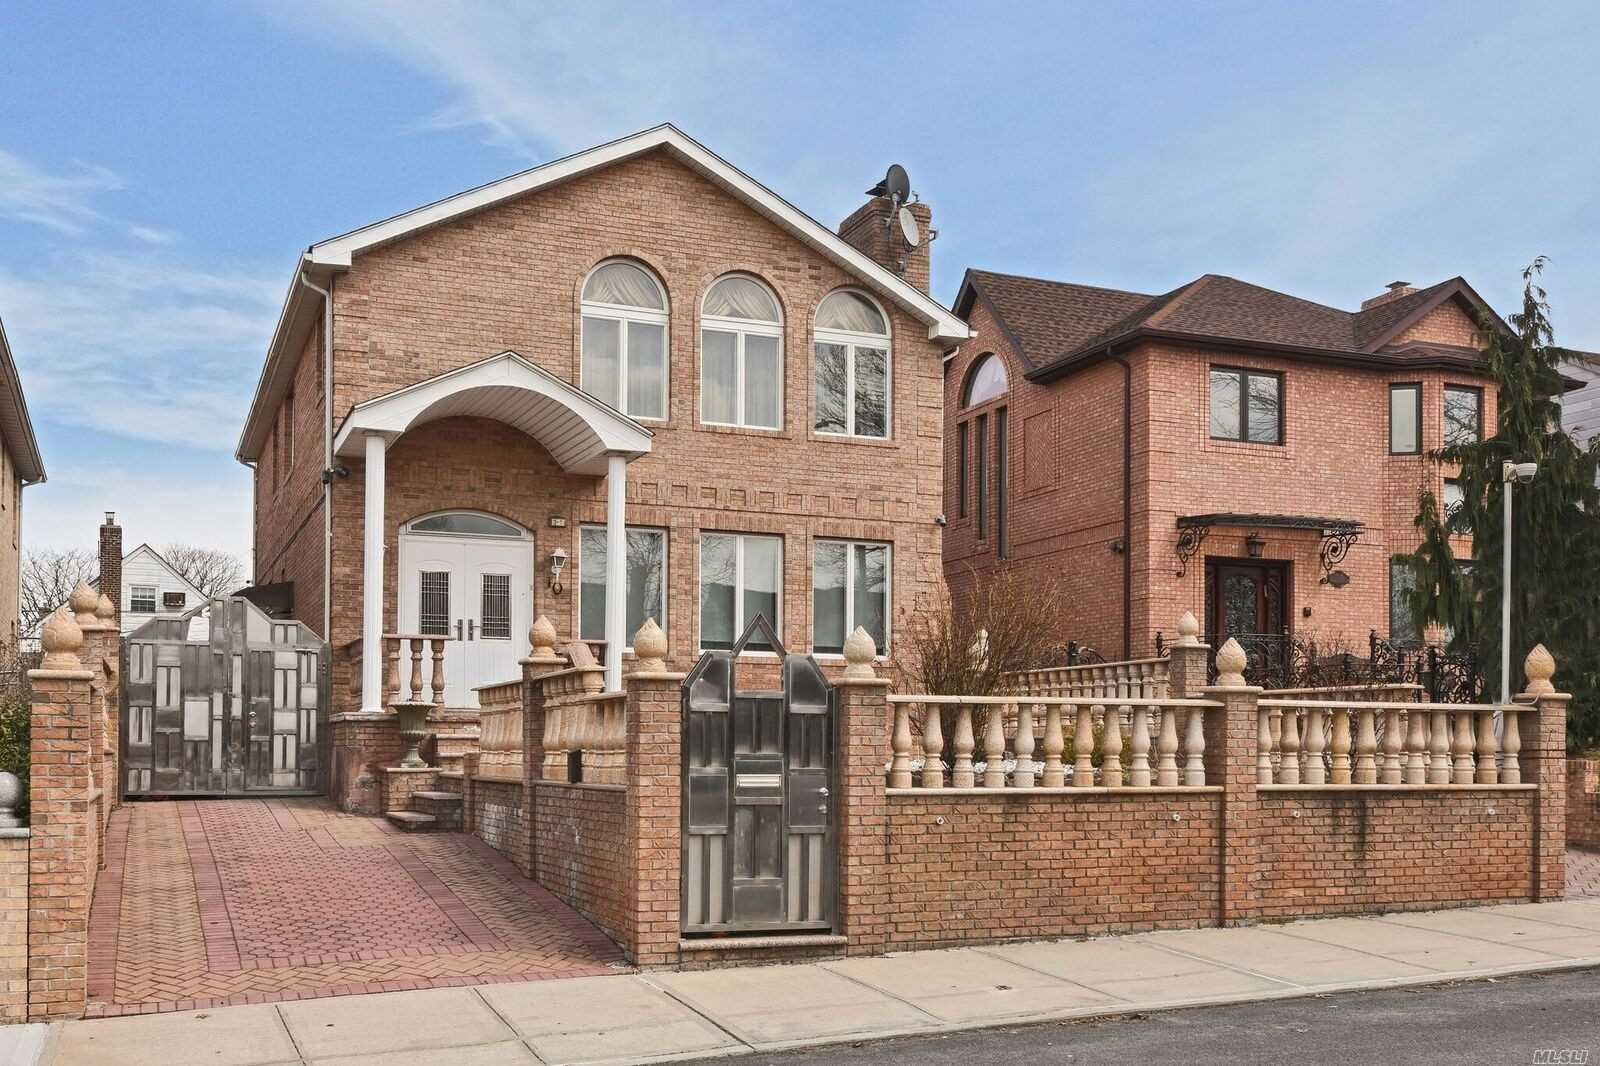 Beautiful 1 Family Detached House For Sale!! House Features Formal Dining Room, Large Living Room W/Fireplace, Eat In Kitchen, 5 Bedrooms, 4 Full Baths, Lovely Porch, Beautiful Backyard And Much Much More...